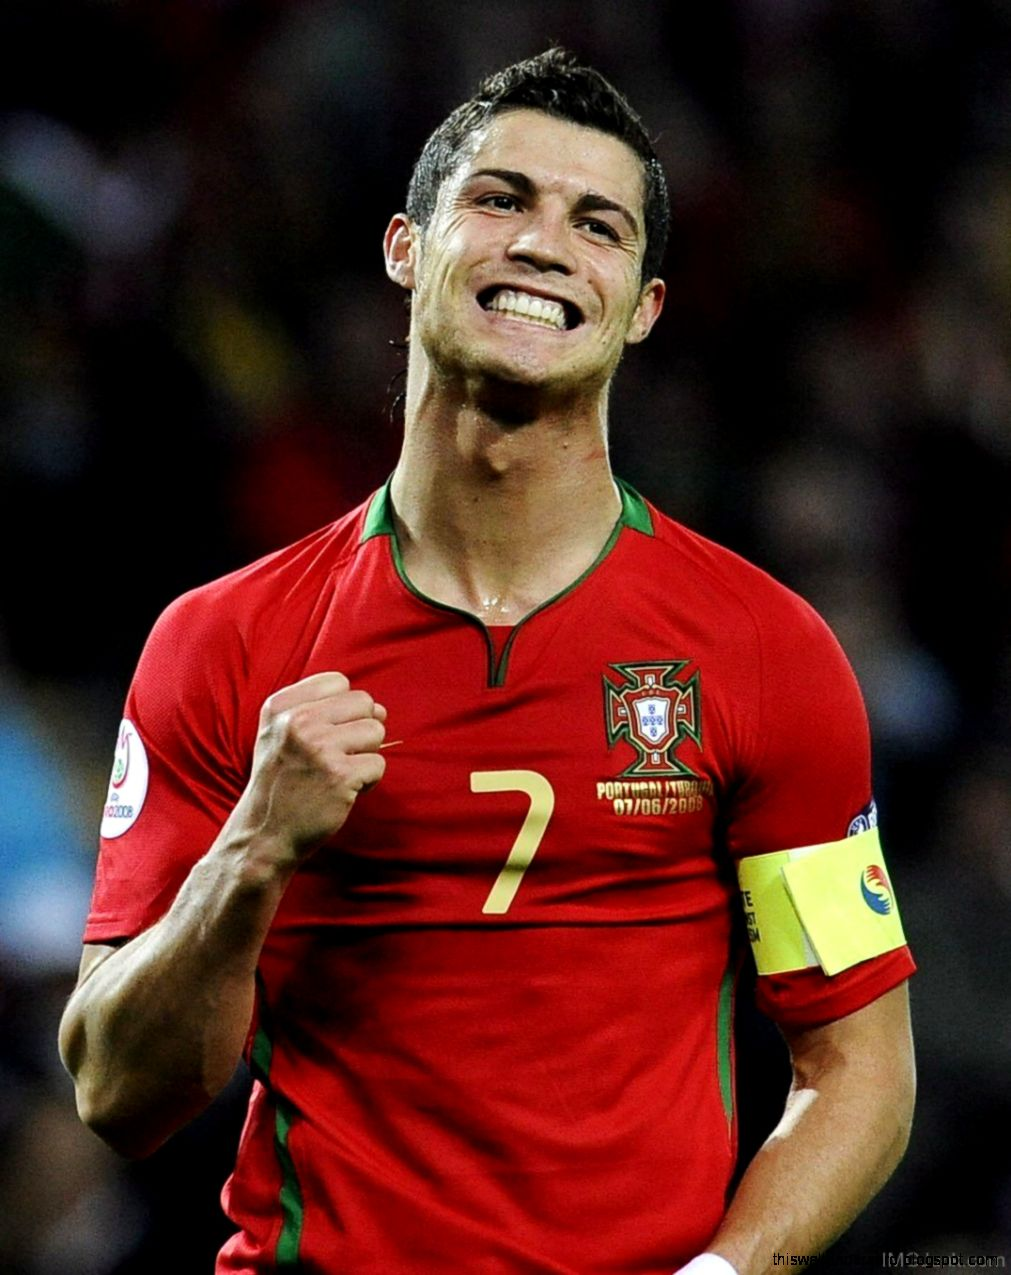 cristiano ronaldo in red t shirt images this wallpapers. Black Bedroom Furniture Sets. Home Design Ideas